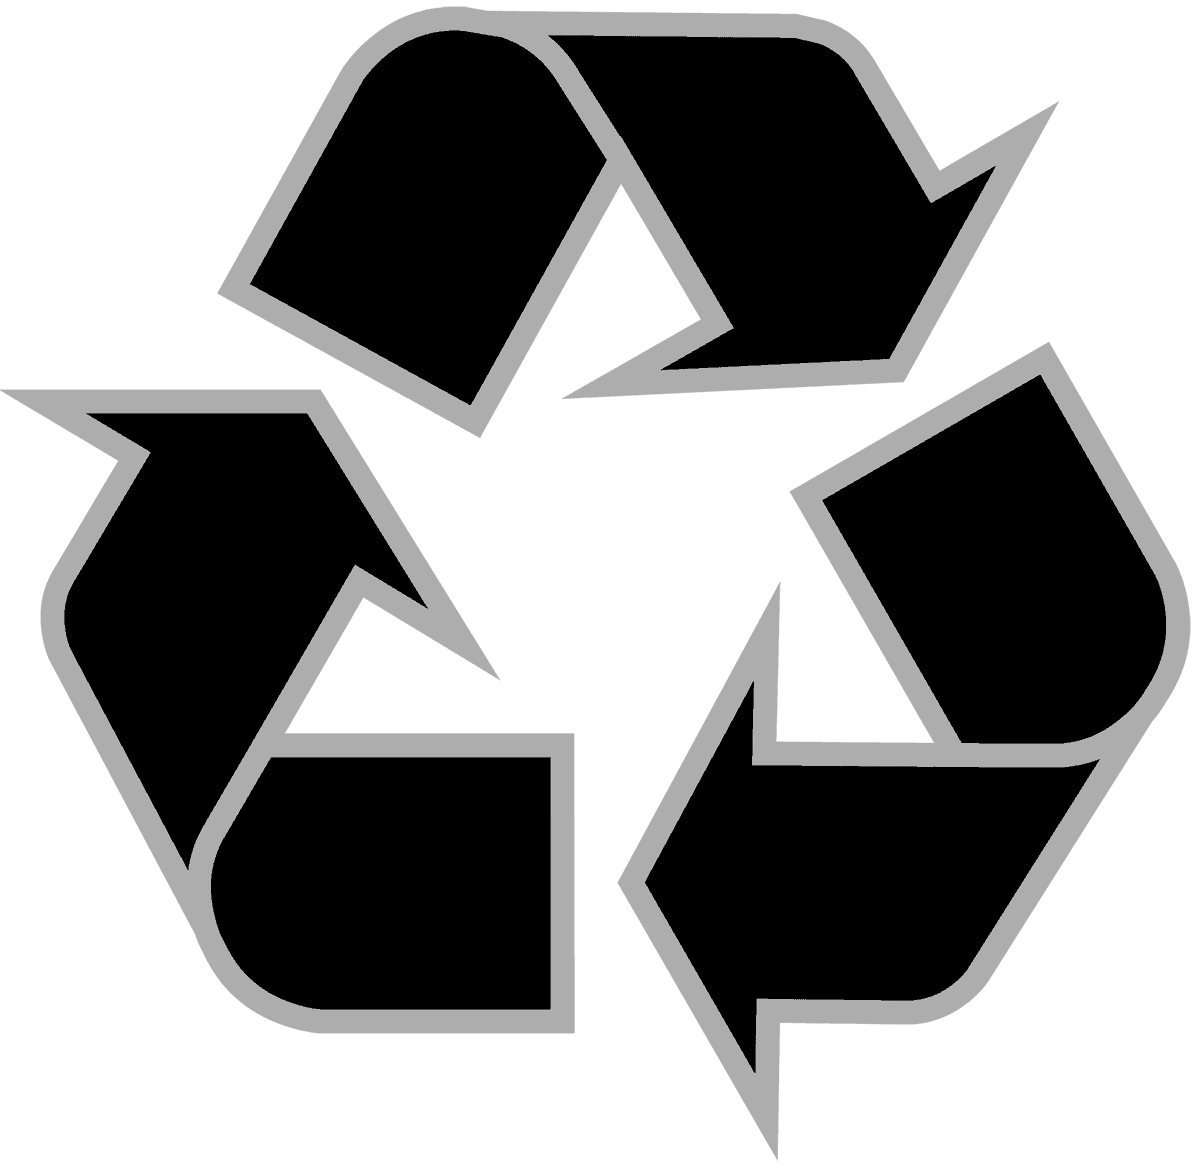 recycling-symbol-icon-outline-solid-black